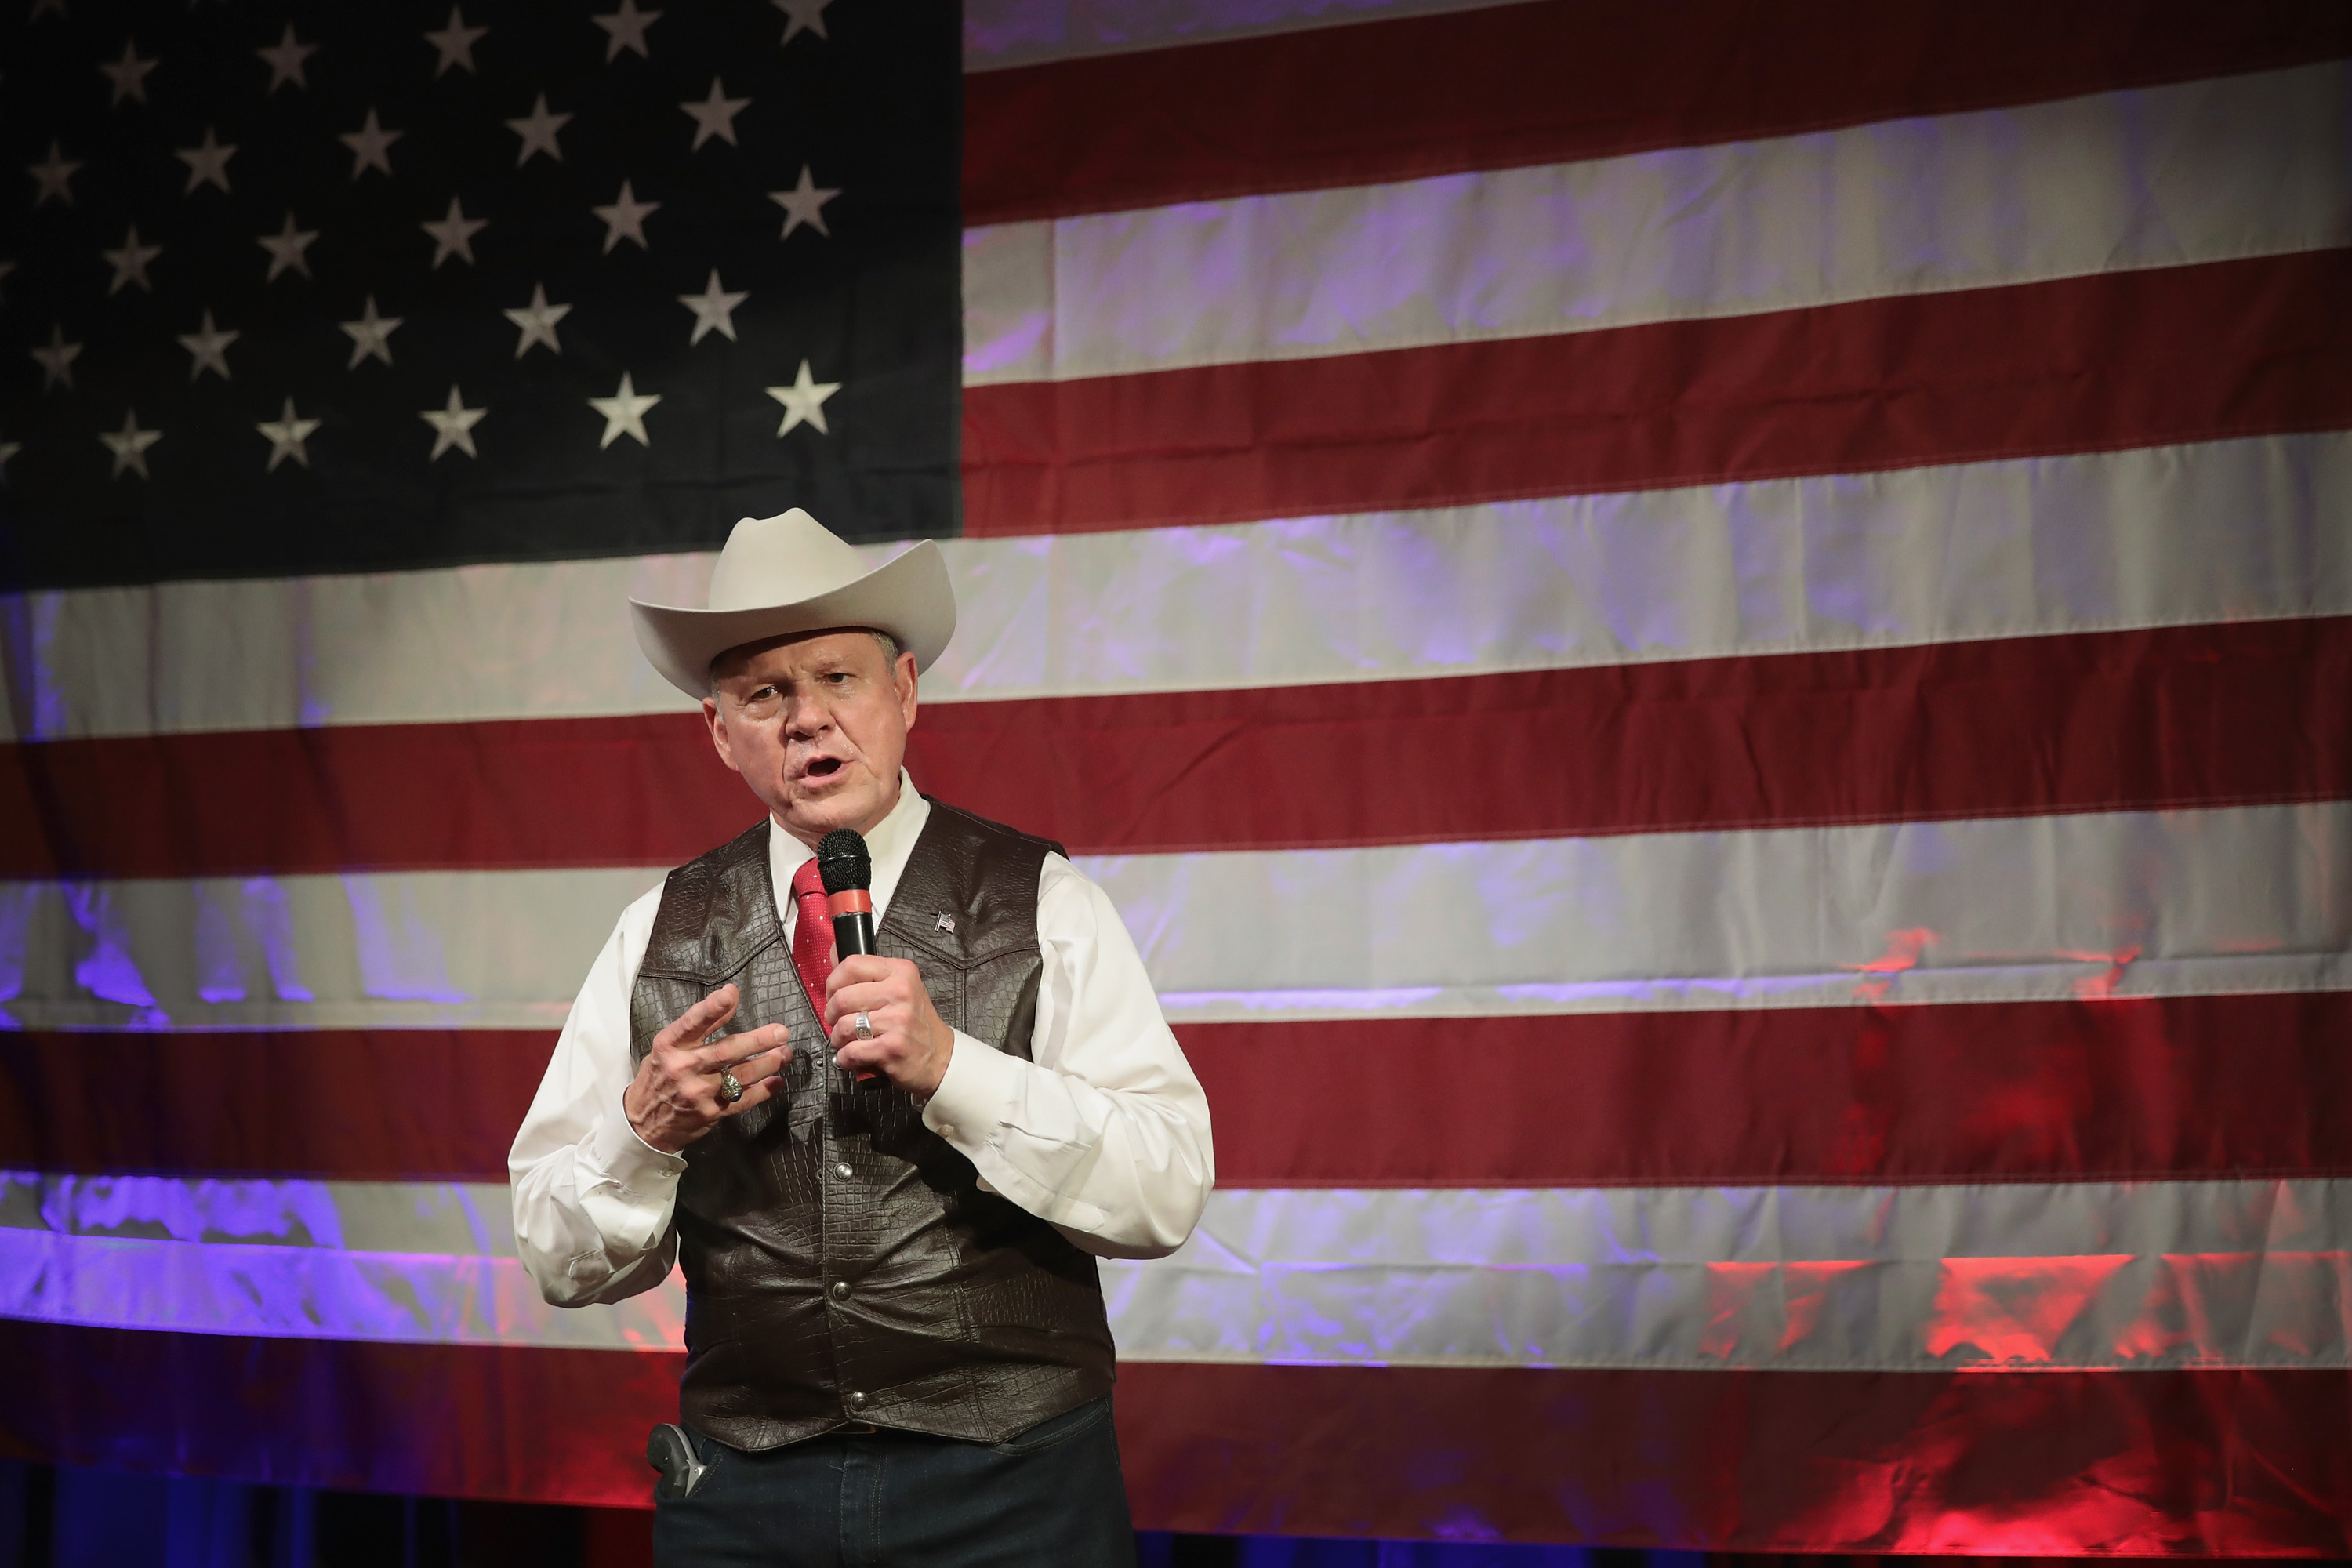 Roy Moore speaks at a campaign rally on September 25, 2017 in Fairhope, Ala.